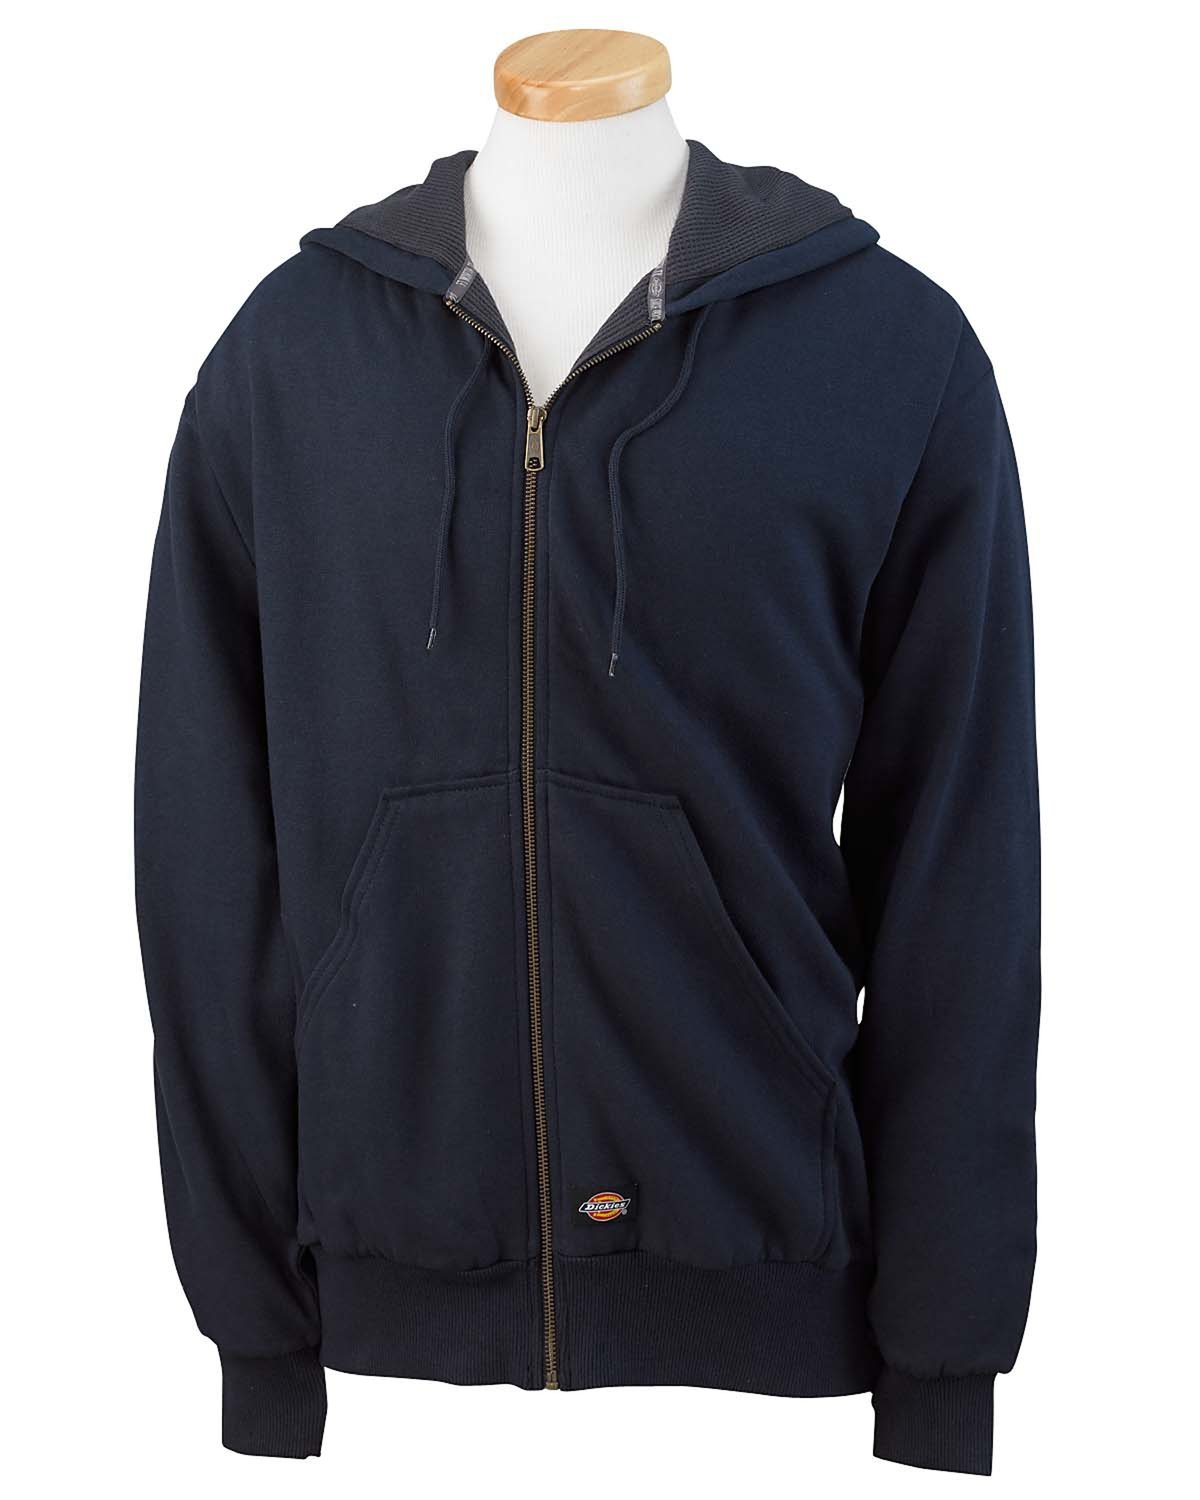 Dickies Men's 470 Gram Thermal-Lined Fleece Jacket Hooded Sweatshirt DARK NAVY